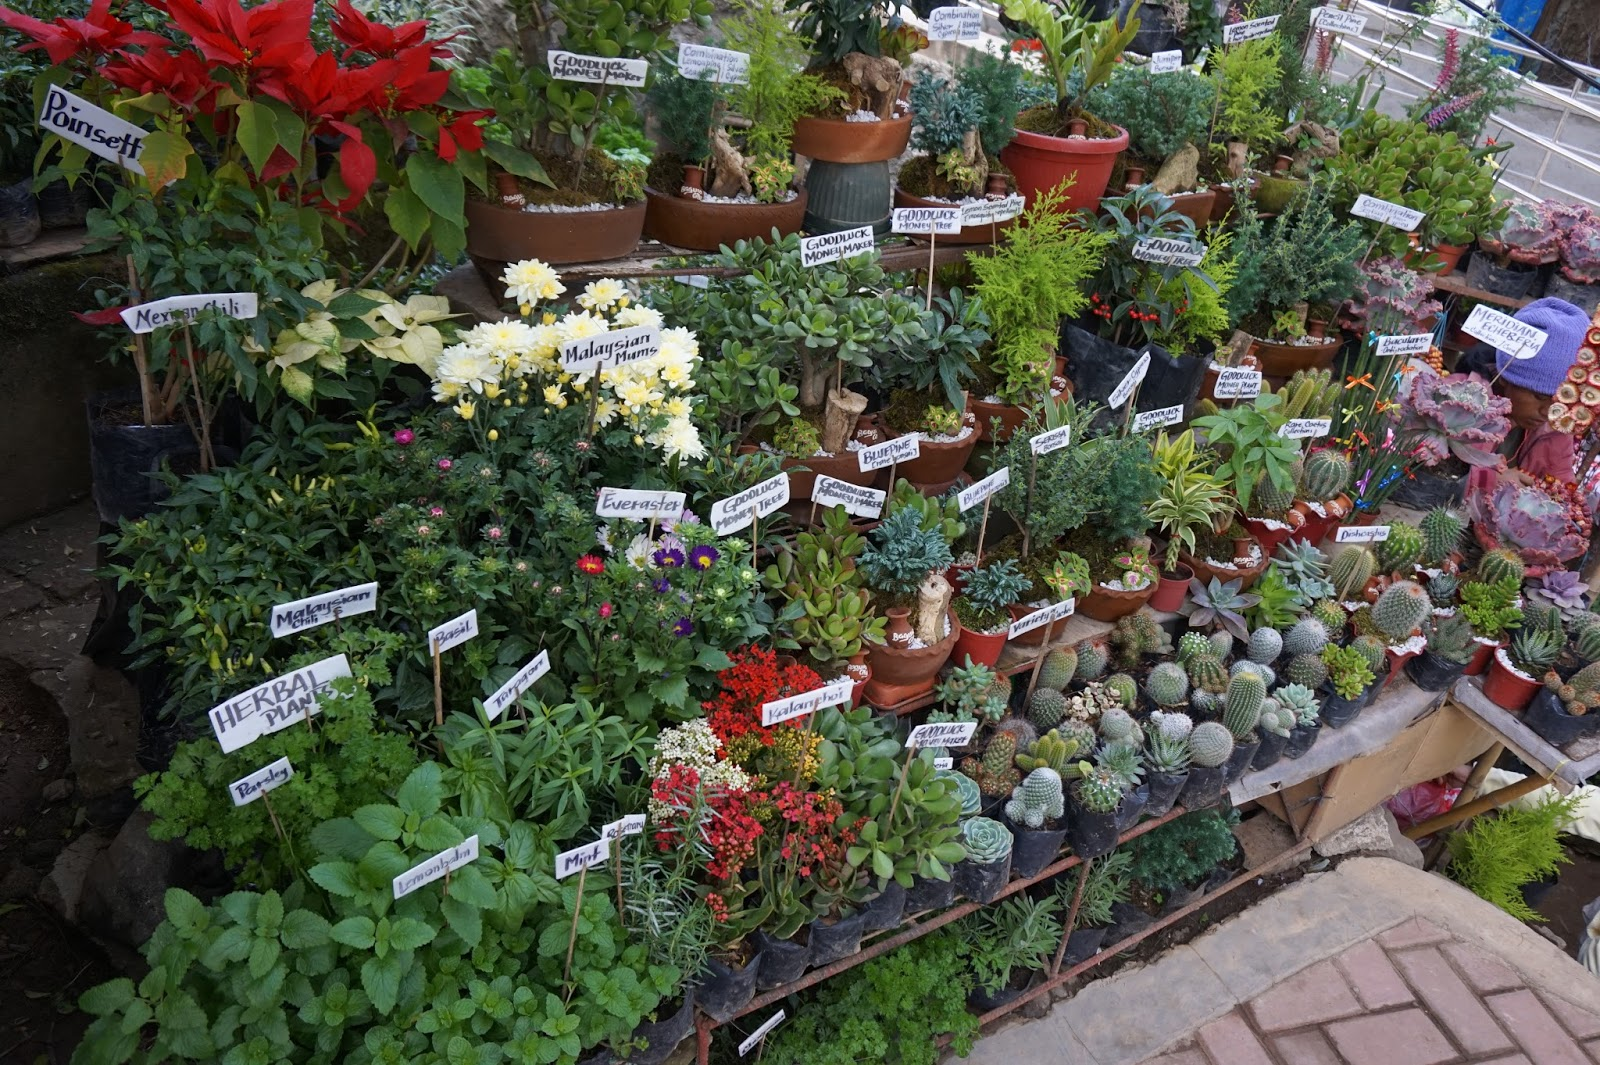 Cacti, Echeveria, Succulents, and Herbal Plants